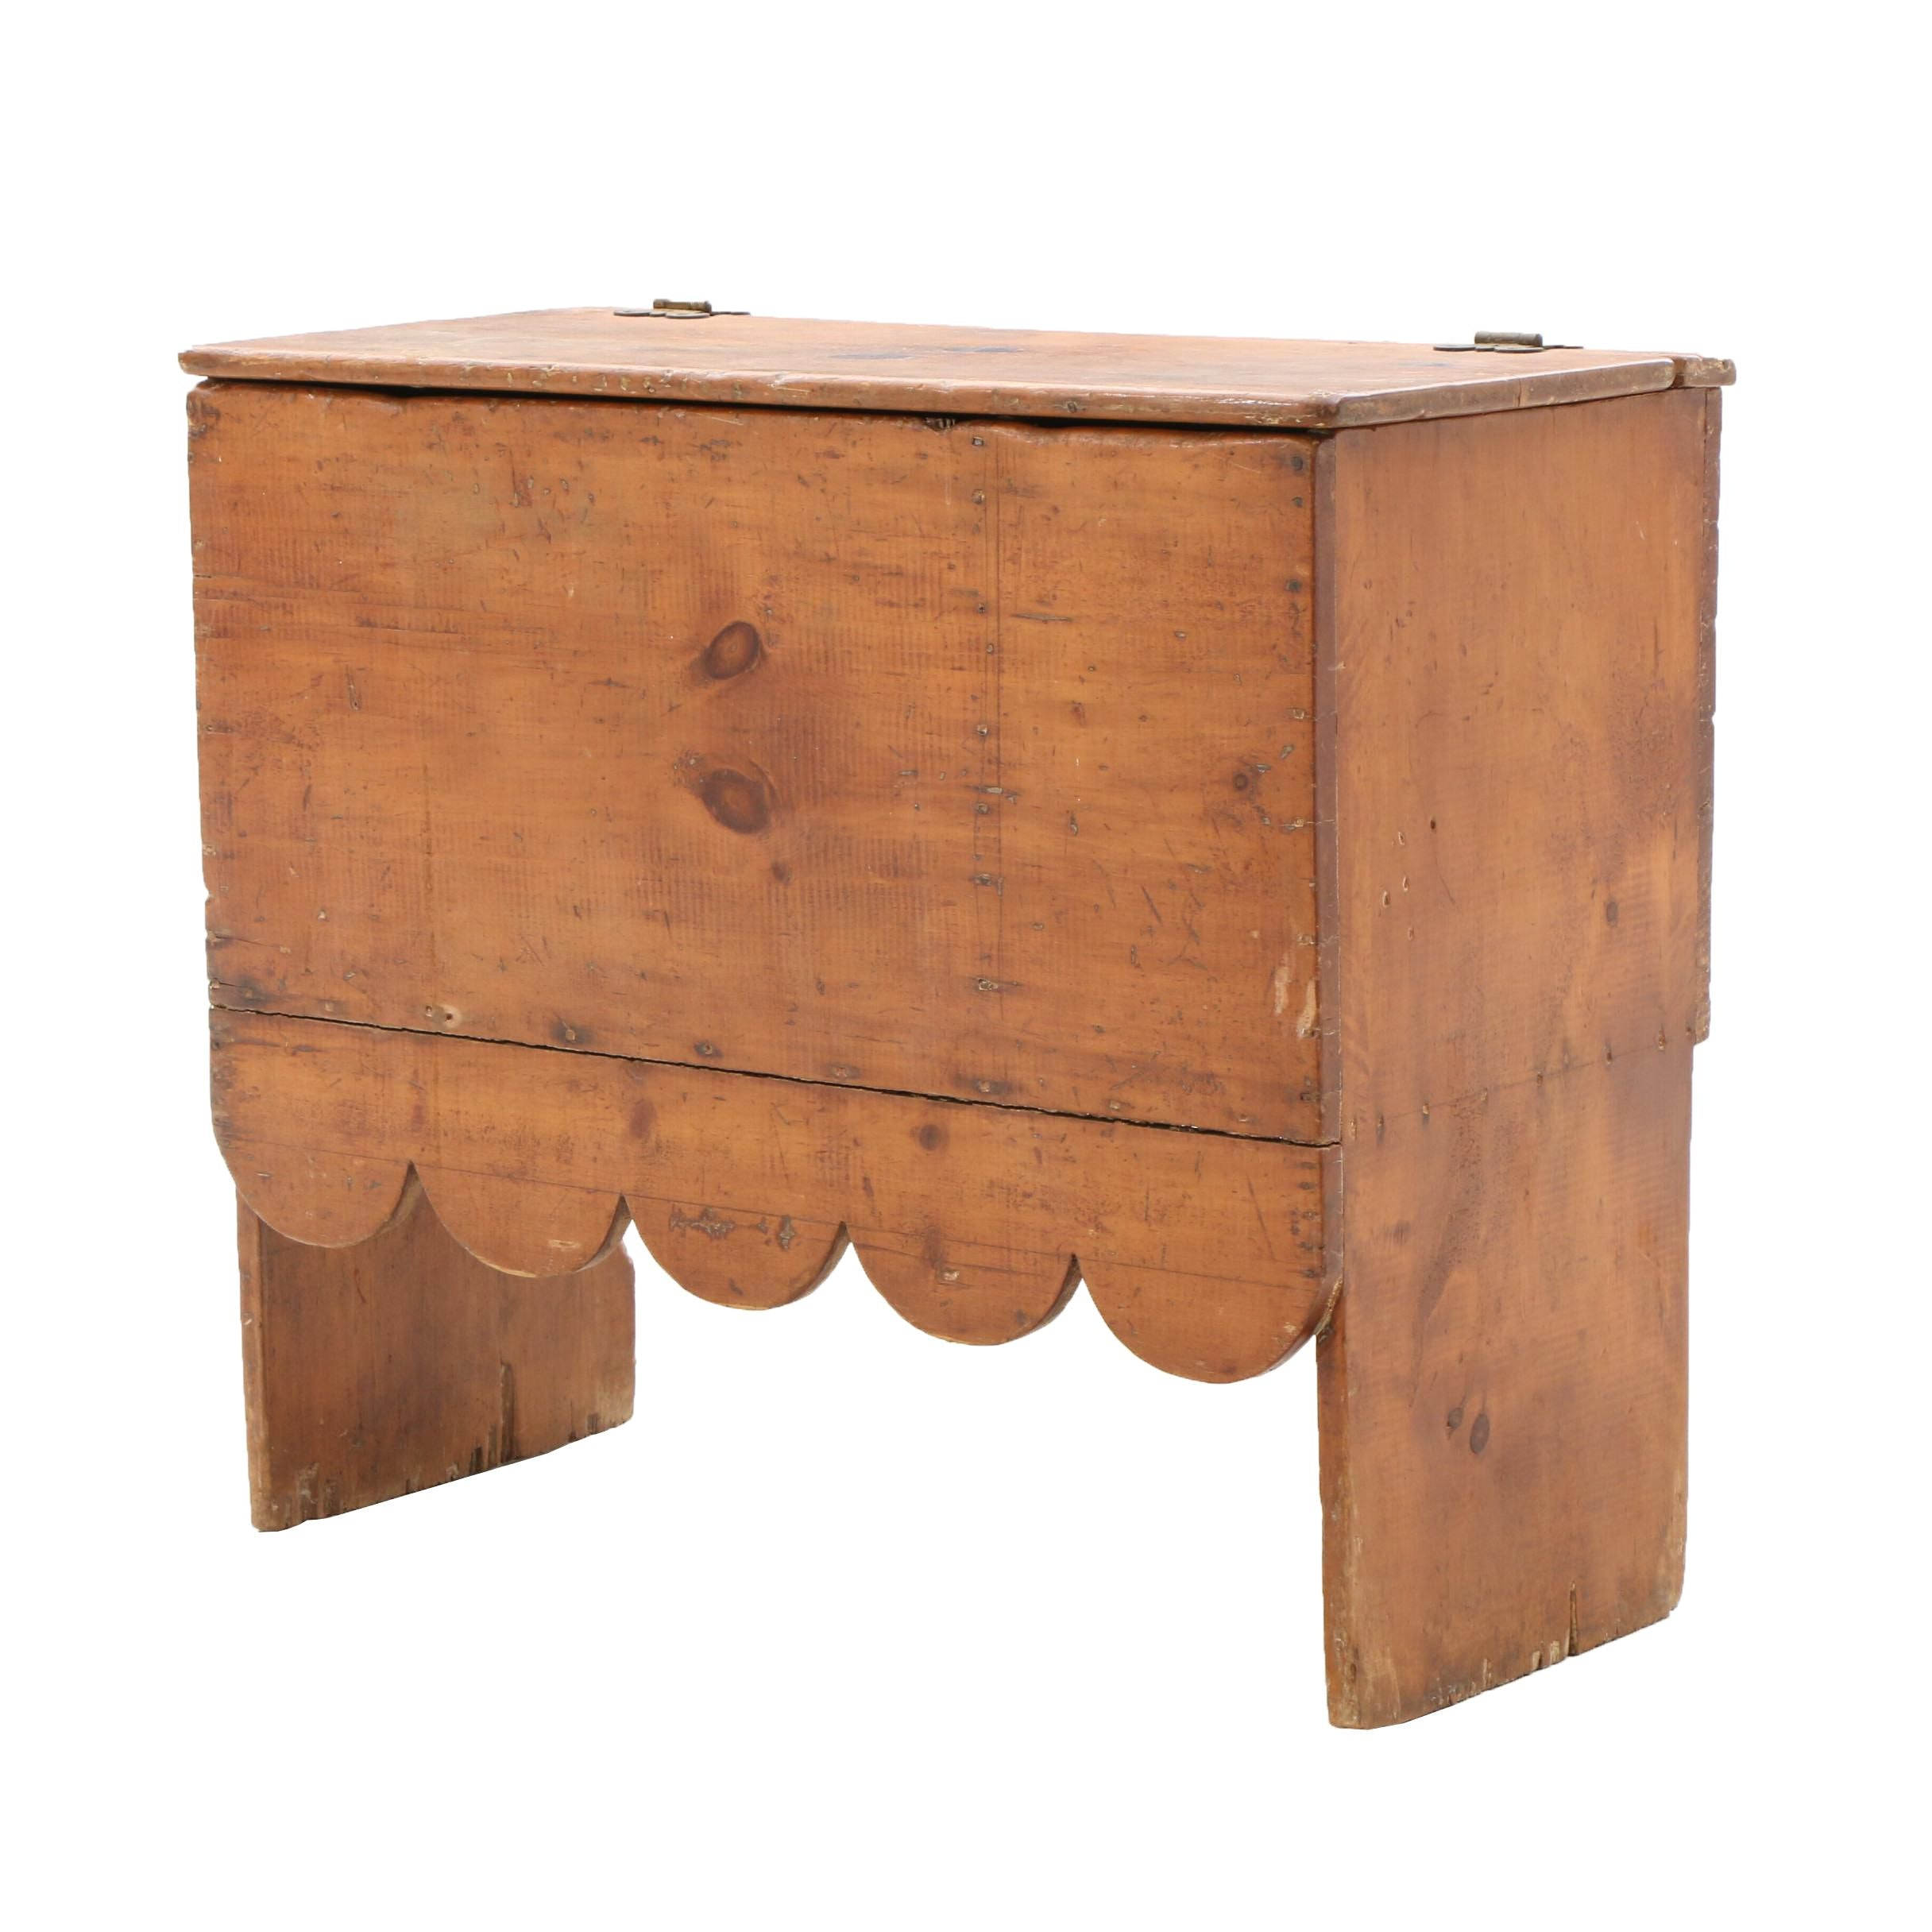 Primitive Pine Mule Chest, Circa 1850